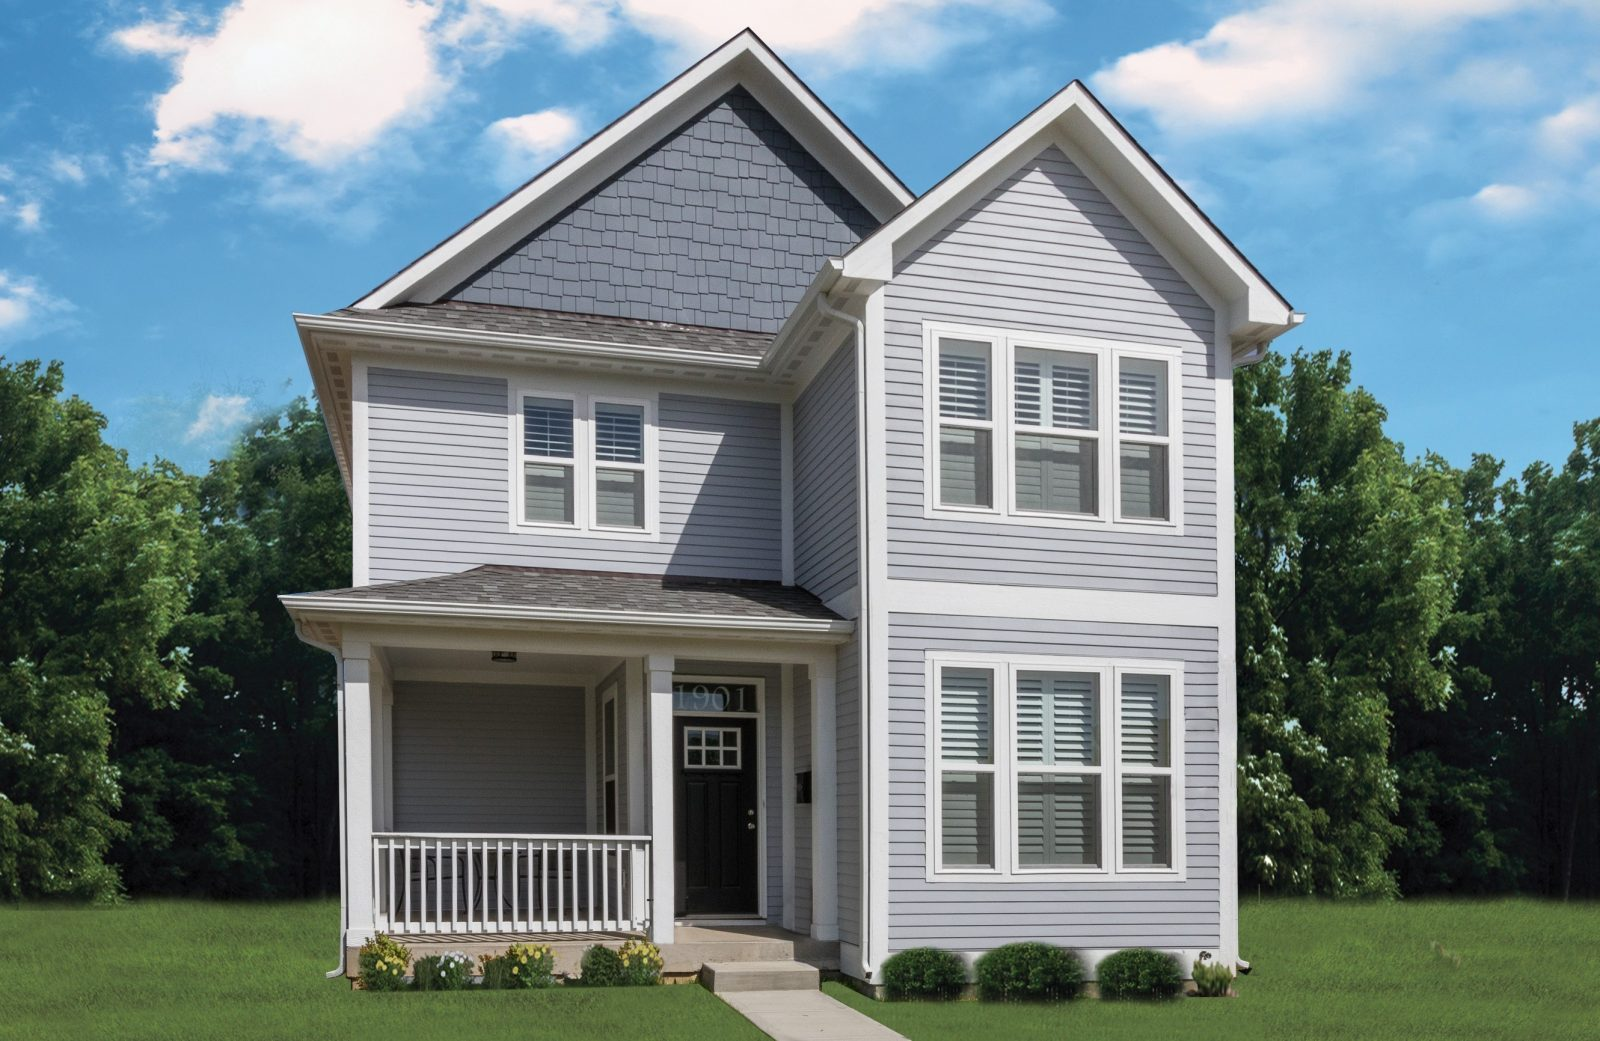 Our Floor Plan Collections at Davis Homes on adams homes model 2265, your plans, adams home plans by number, adams homes model 2010, adams homes model 3000, adams homes 2508 plan, adams homes kitchens, adams homes 1820 plan, adams 3000 floor plan interior, adams homes gulf breeze fl, adams homes layout, adams homes 2169 model, adams homes 2240 model,